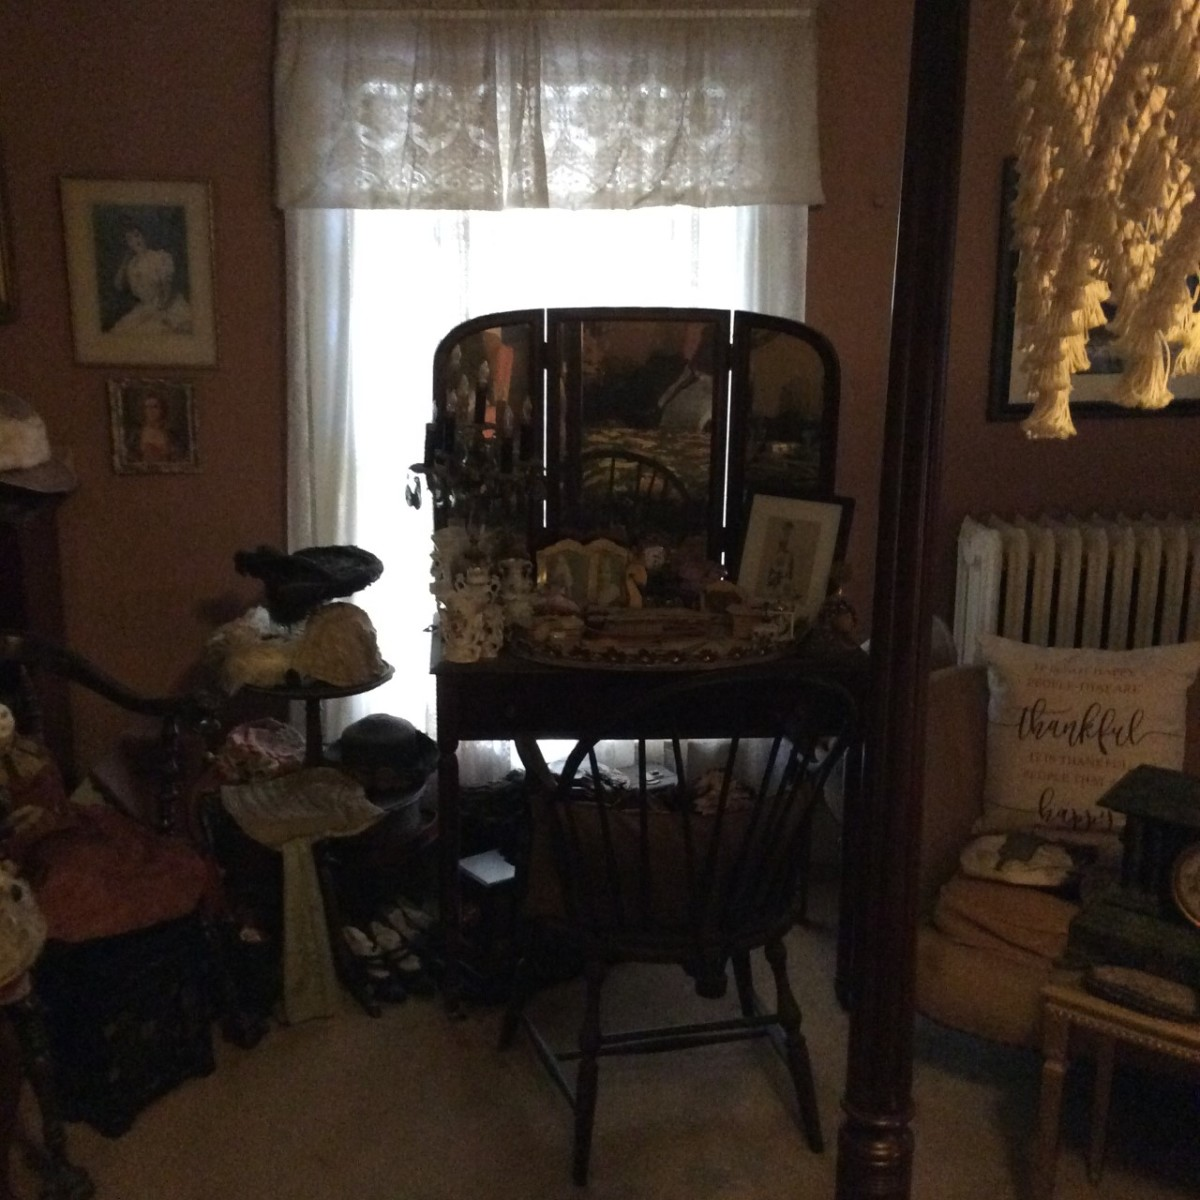 An antique vanity and trinkets set up in Mullikin's bedroom.